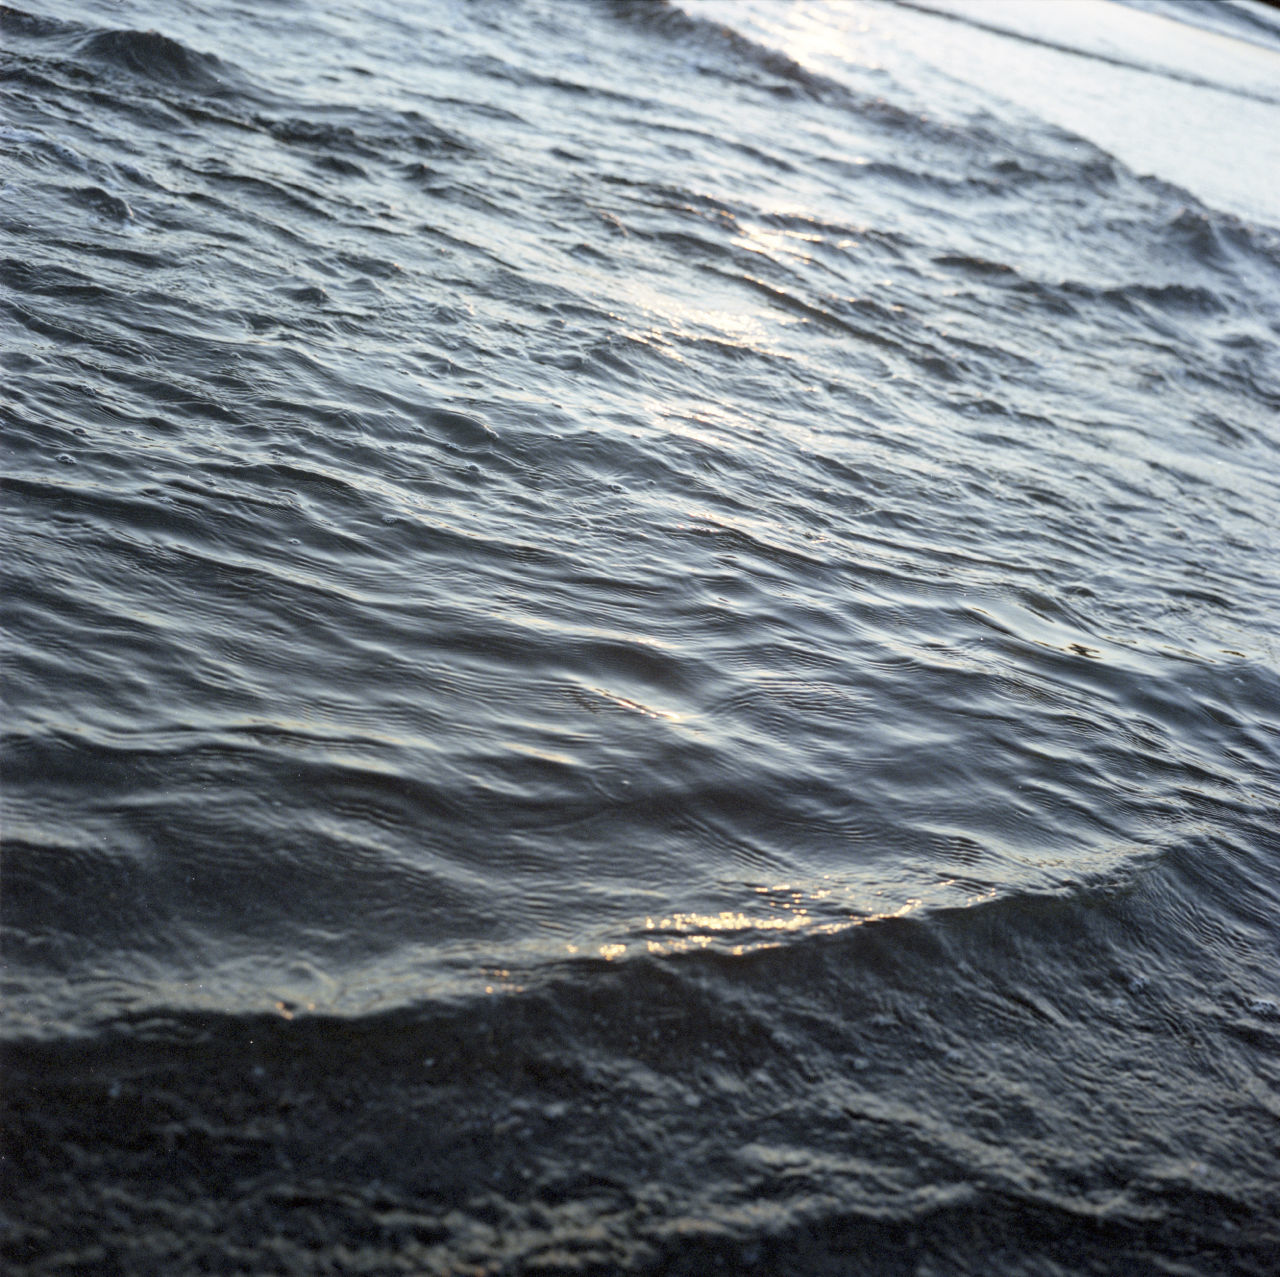 water, wave, motion, nature, sea, no people, waterfront, day, outdoors, beauty in nature, close-up